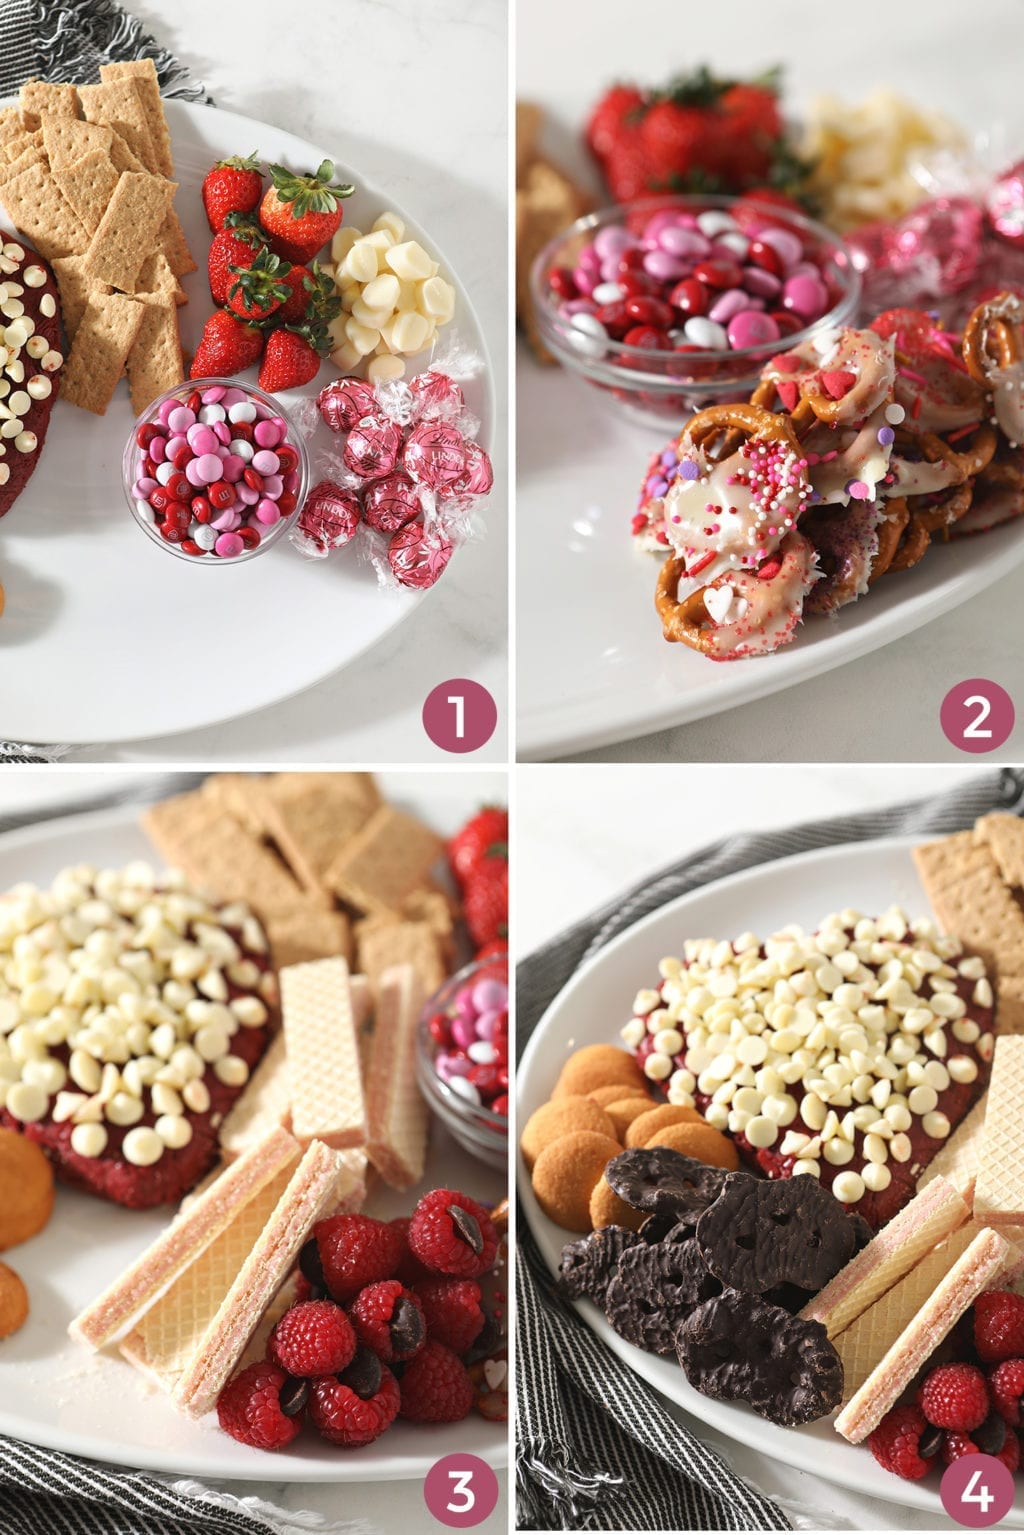 A collage of four images shows how to fill in the holes on the board and how to finish the dessert display